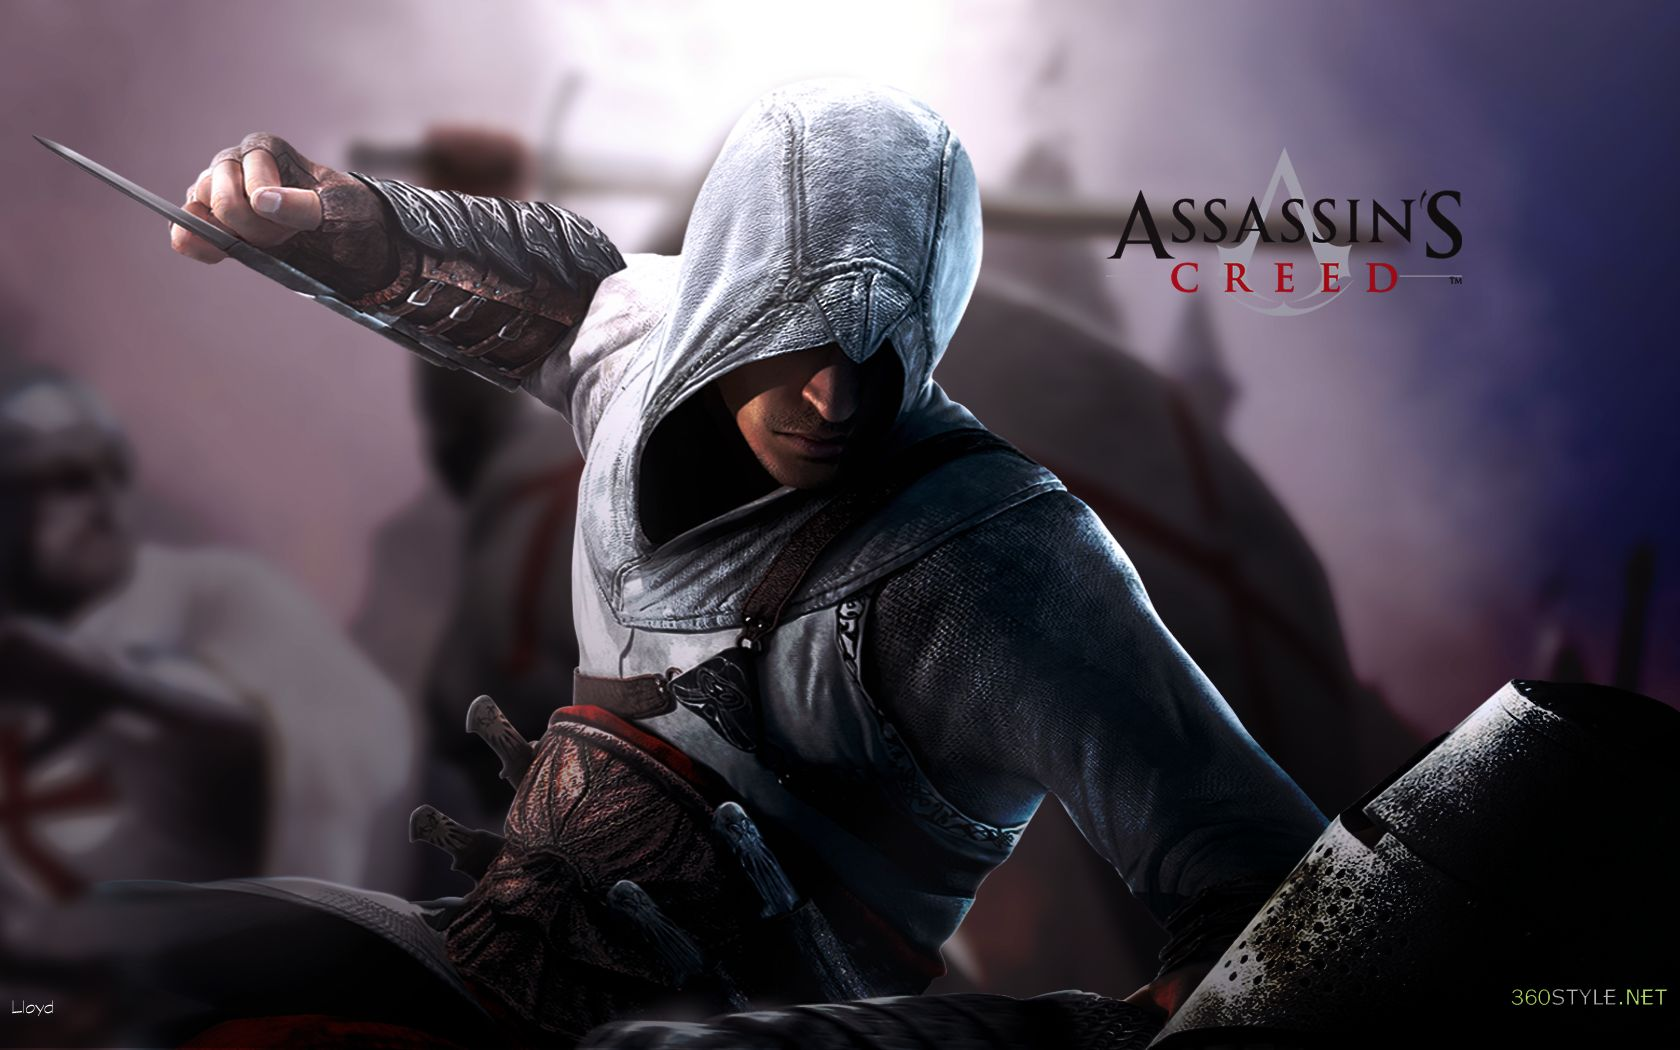 Free Download Pics Photos Assassins Creed Altair Wallpapers